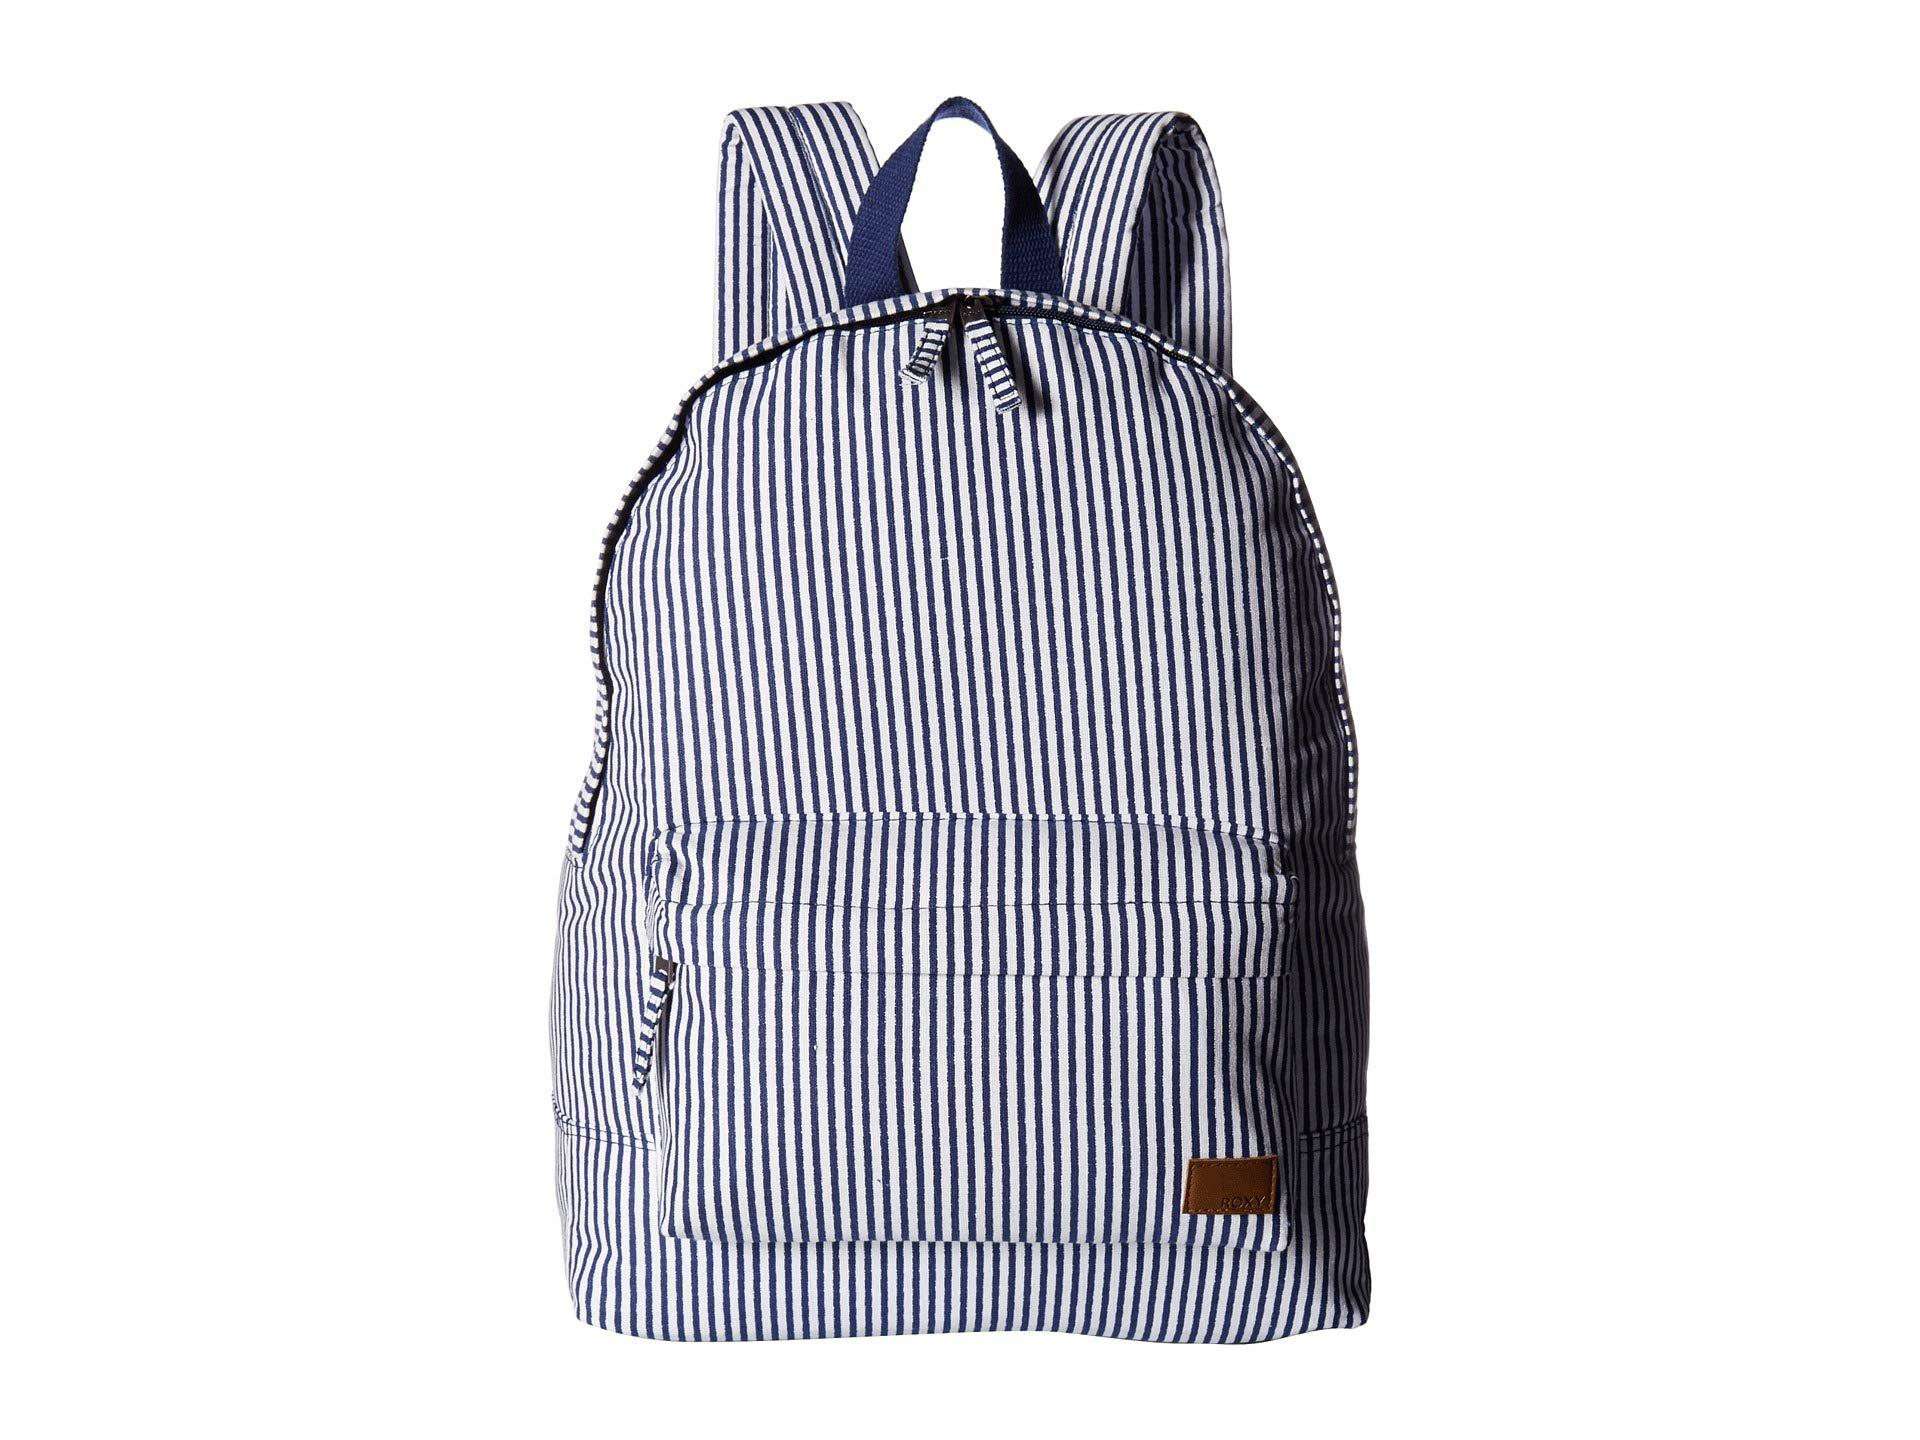 d585a55c6ed roxy-Dress-Blue-Cornfield-Stripe-Sugar-Baby-Canvas-Backpack-dress -Blue-Cornfield-Stripe-Backpack-Bags.jpeg